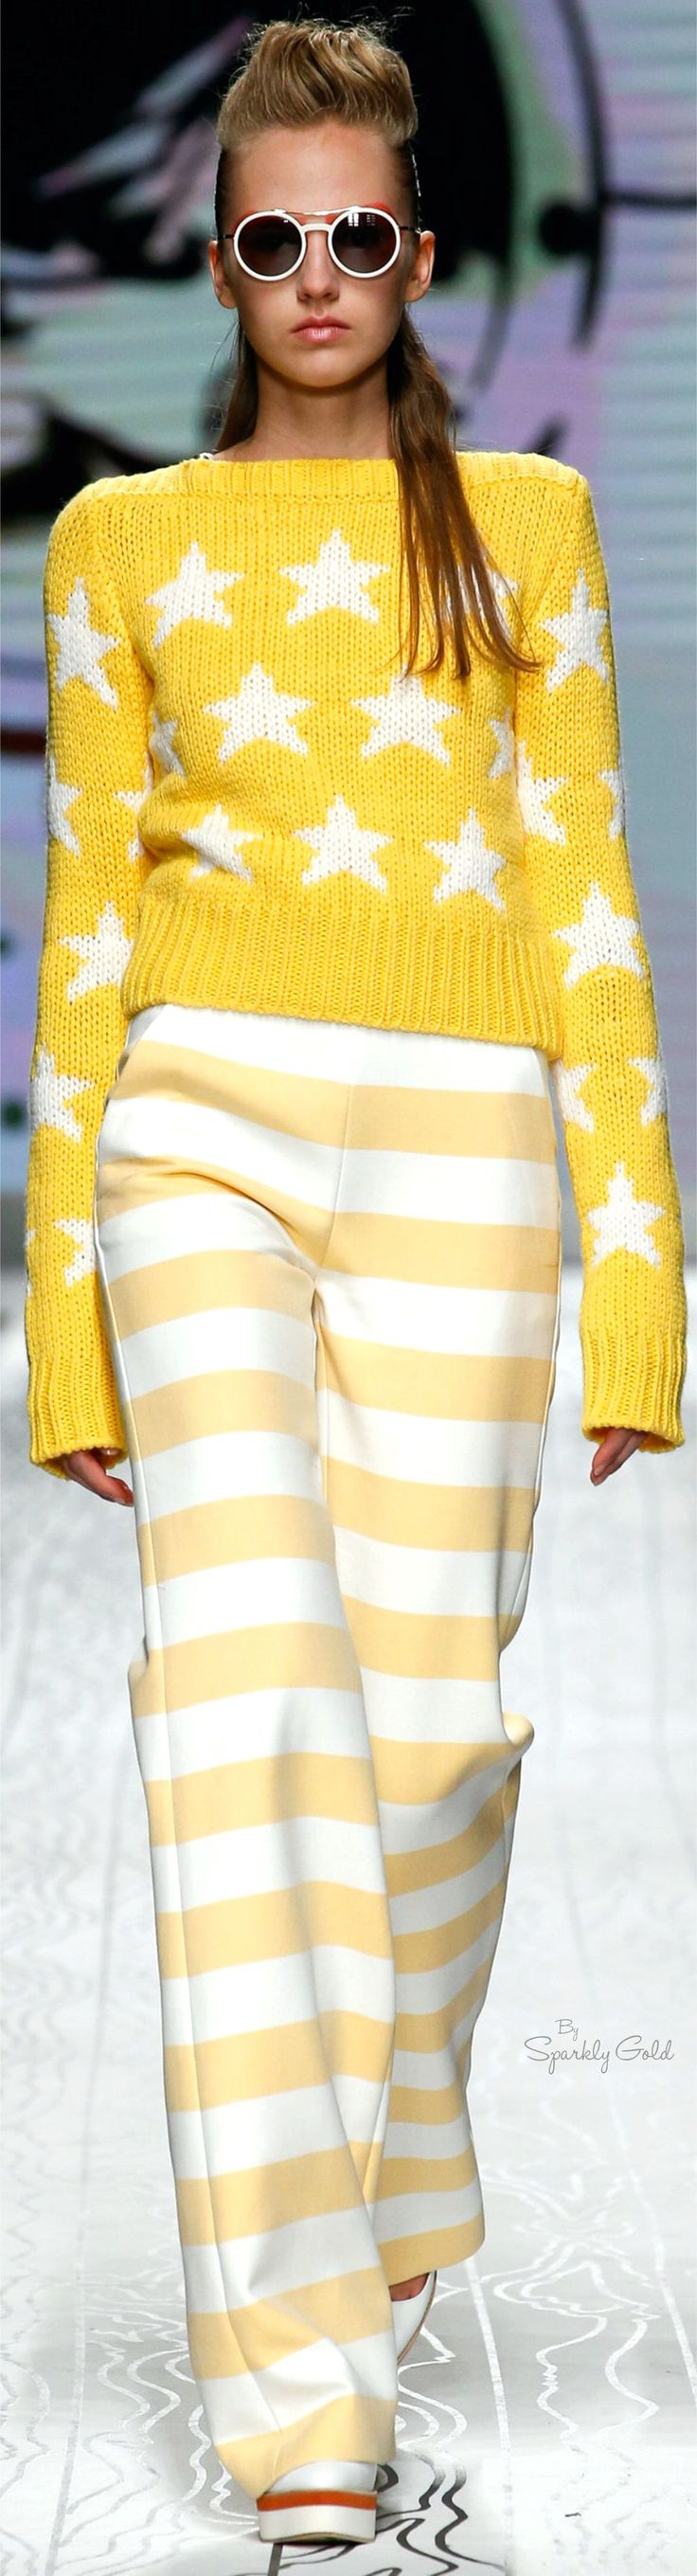 Max Mara Spring 2016 RTW yellow sweater. women fashion outfit clothing stylish apparel @roressclothes closet ideas